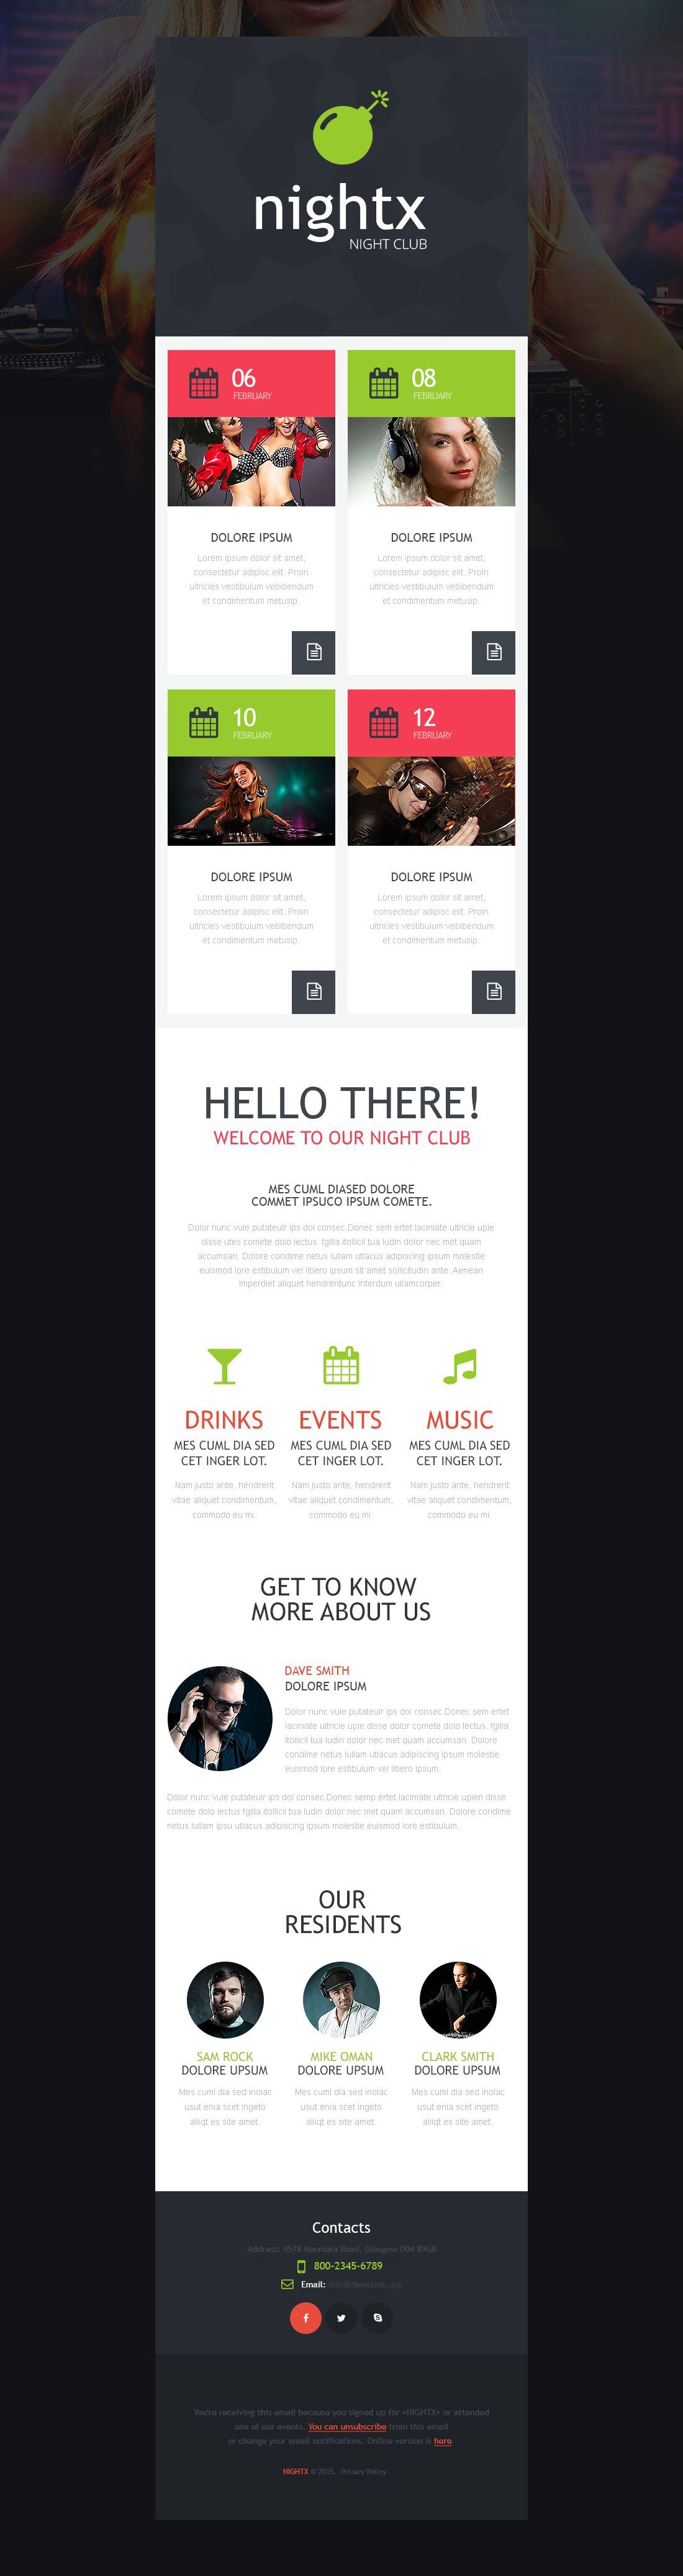 The Nightx Night Club Newsletter Template Design 53343, one of the best Newsletter templates of its kind (night club, most popular), also known as nightx night club Newsletter template, music Newsletter template, dances Newsletter template, dancers Newsletter template, entertainment Newsletter template, joy Newsletter template, energy Newsletter template, free drinks Newsletter template, tickets Newsletter template, party Newsletter template, deejays Newsletter template, dj Newsletter template, events Newsletter template, beats Newsletter template, disks Newsletter template, songs Newsletter template, tunes Newsletter template, rhythms Newsletter template, gallery Newsletter template, photos Newsletter template, pictures Newsletter template, guests Newsletter template, participants Newsletter template, interview Newsletter template, stars Newsletter template, artists Newsletter template, funs Newsletter template, booking Newsletter template, mob Newsletter template, glamour girls Newsletter template, party Newsletter template, MC cocktail and related with nightx night club, music, dances, dancers, entertainment, joy, energy, free drinks, tickets, party, deejays, dj, events, beats, disks, songs, tunes, rhythms, gallery, photos, pictures, guests, participants, interview, stars, artists, funs, booking, mob, glamour girls, party, MC cocktail, etc.